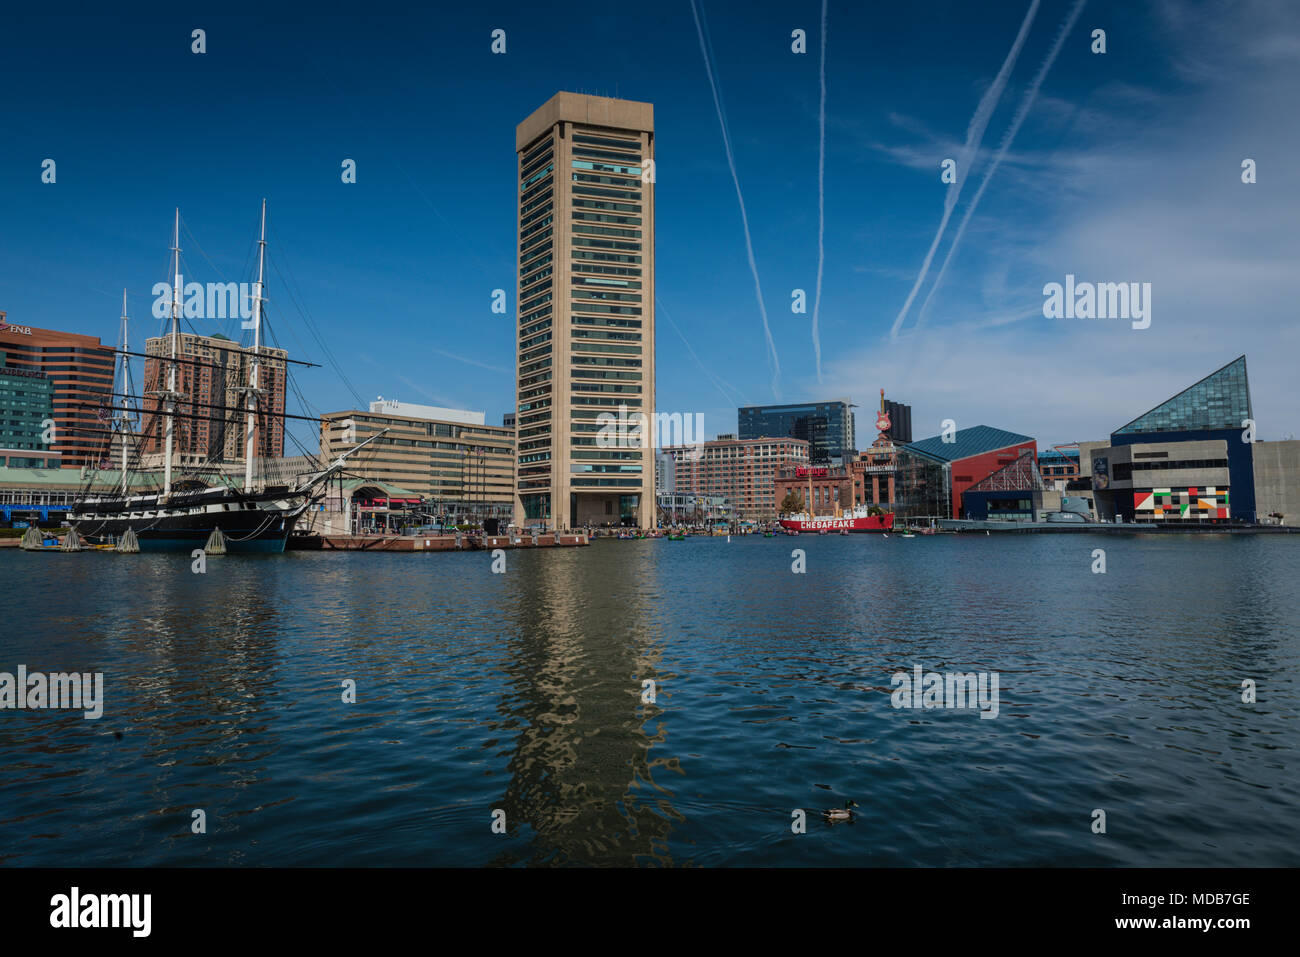 Water level view of the Inner Harbor in Baltimore includes the Constellation ship, the National Aquarium, and downtown cityscape. - Stock Image